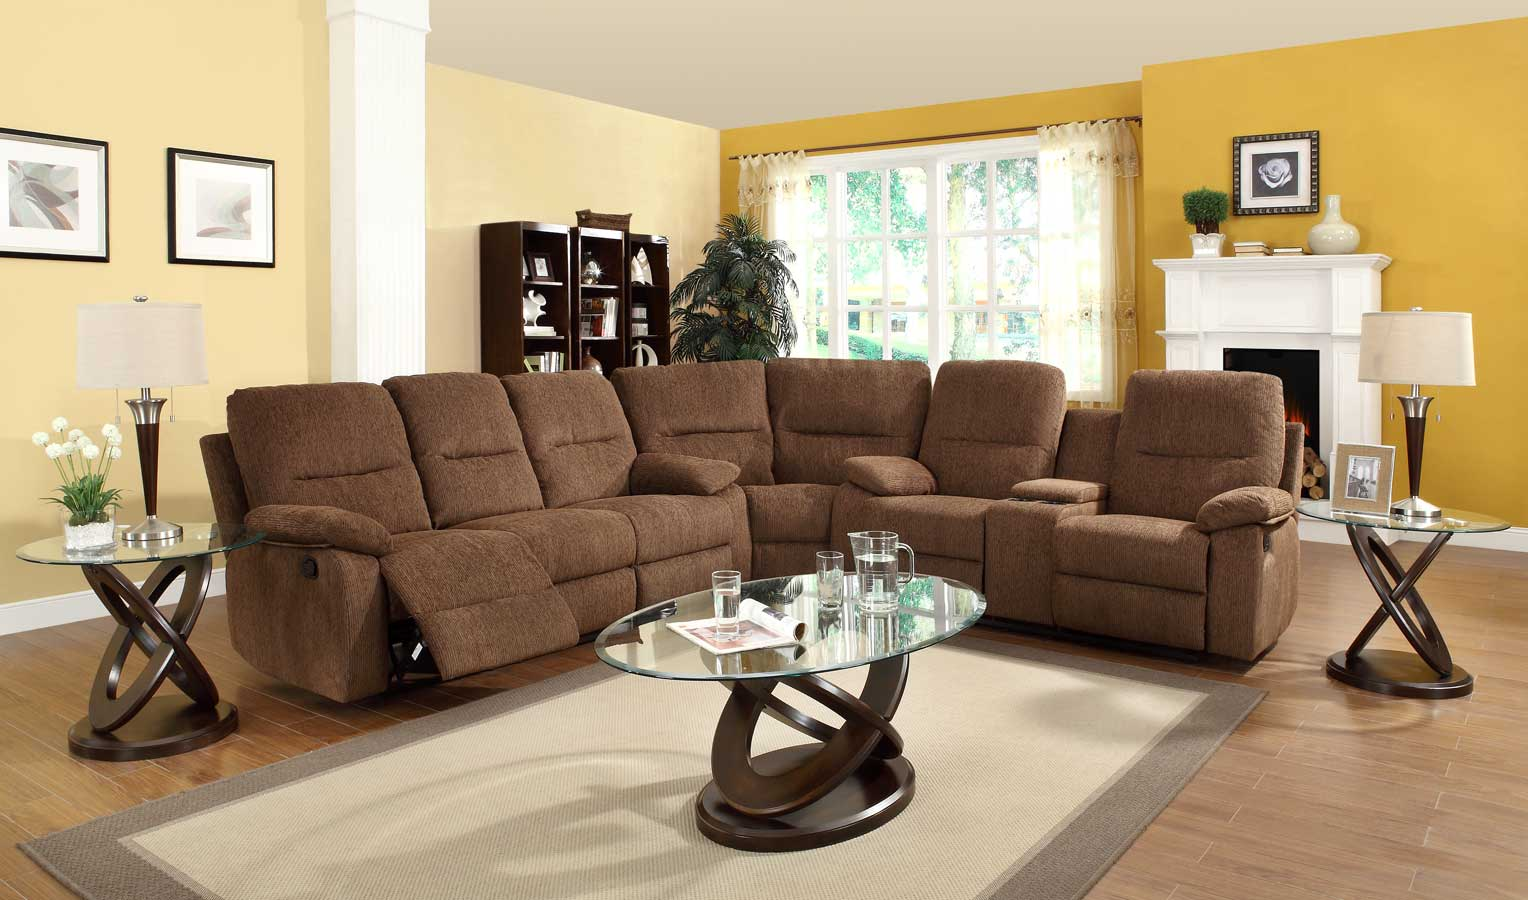 Homelegance Marianna Modular Reclining Sectional Sofa Set - Dark Brown Chenille & Homelegance Marianna Modular Reclining Sectional Sofa Set - Dark ... islam-shia.org